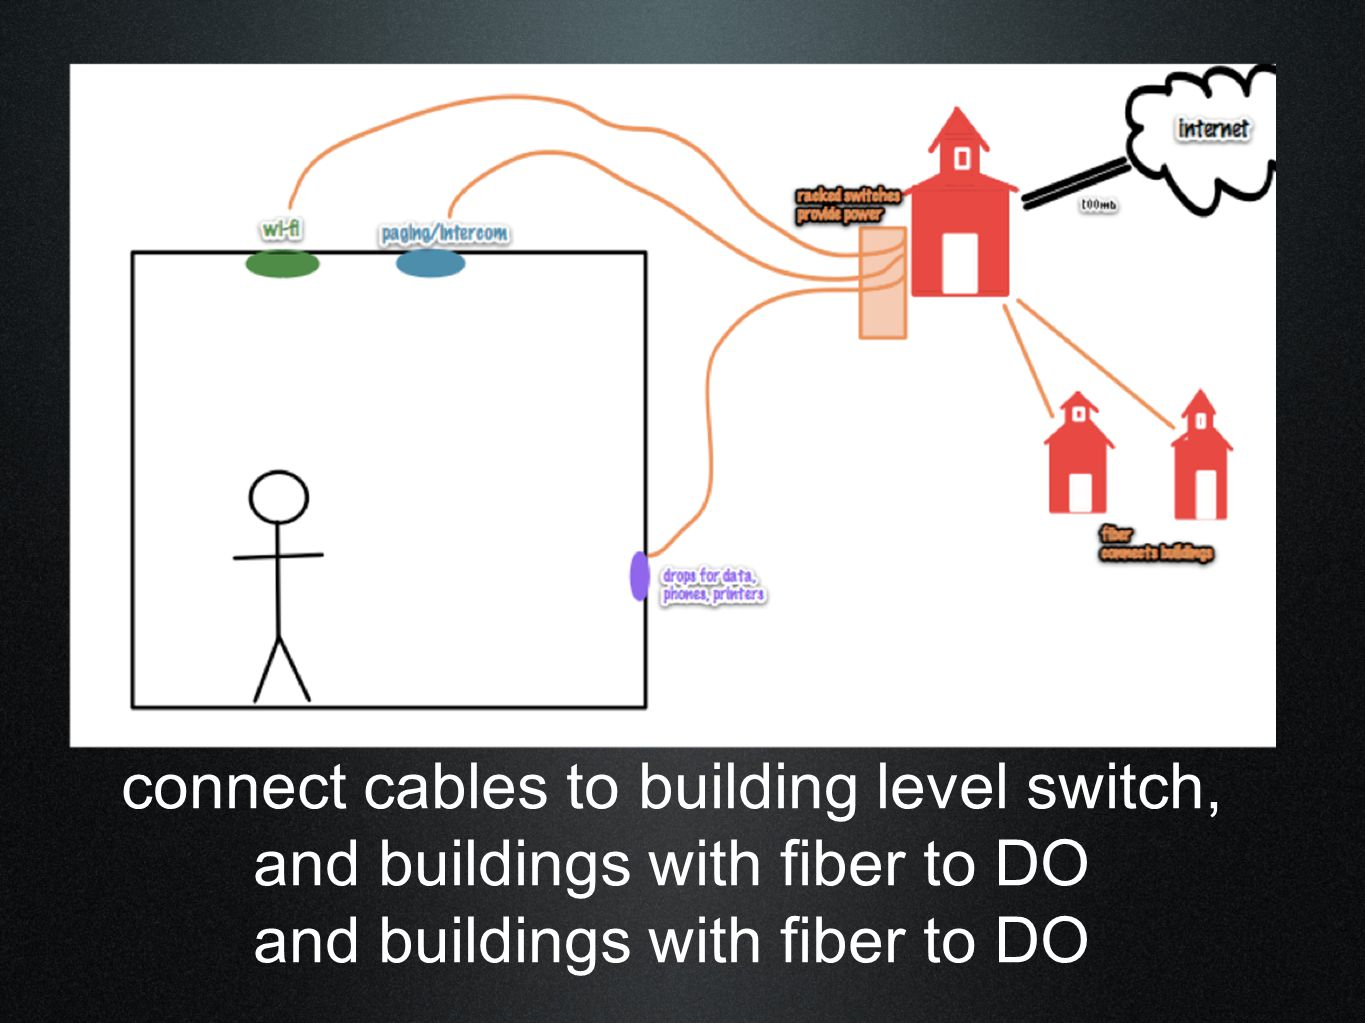 connect cables to building level switch, and buildings with fiber to DO and buildings with fiber to DO